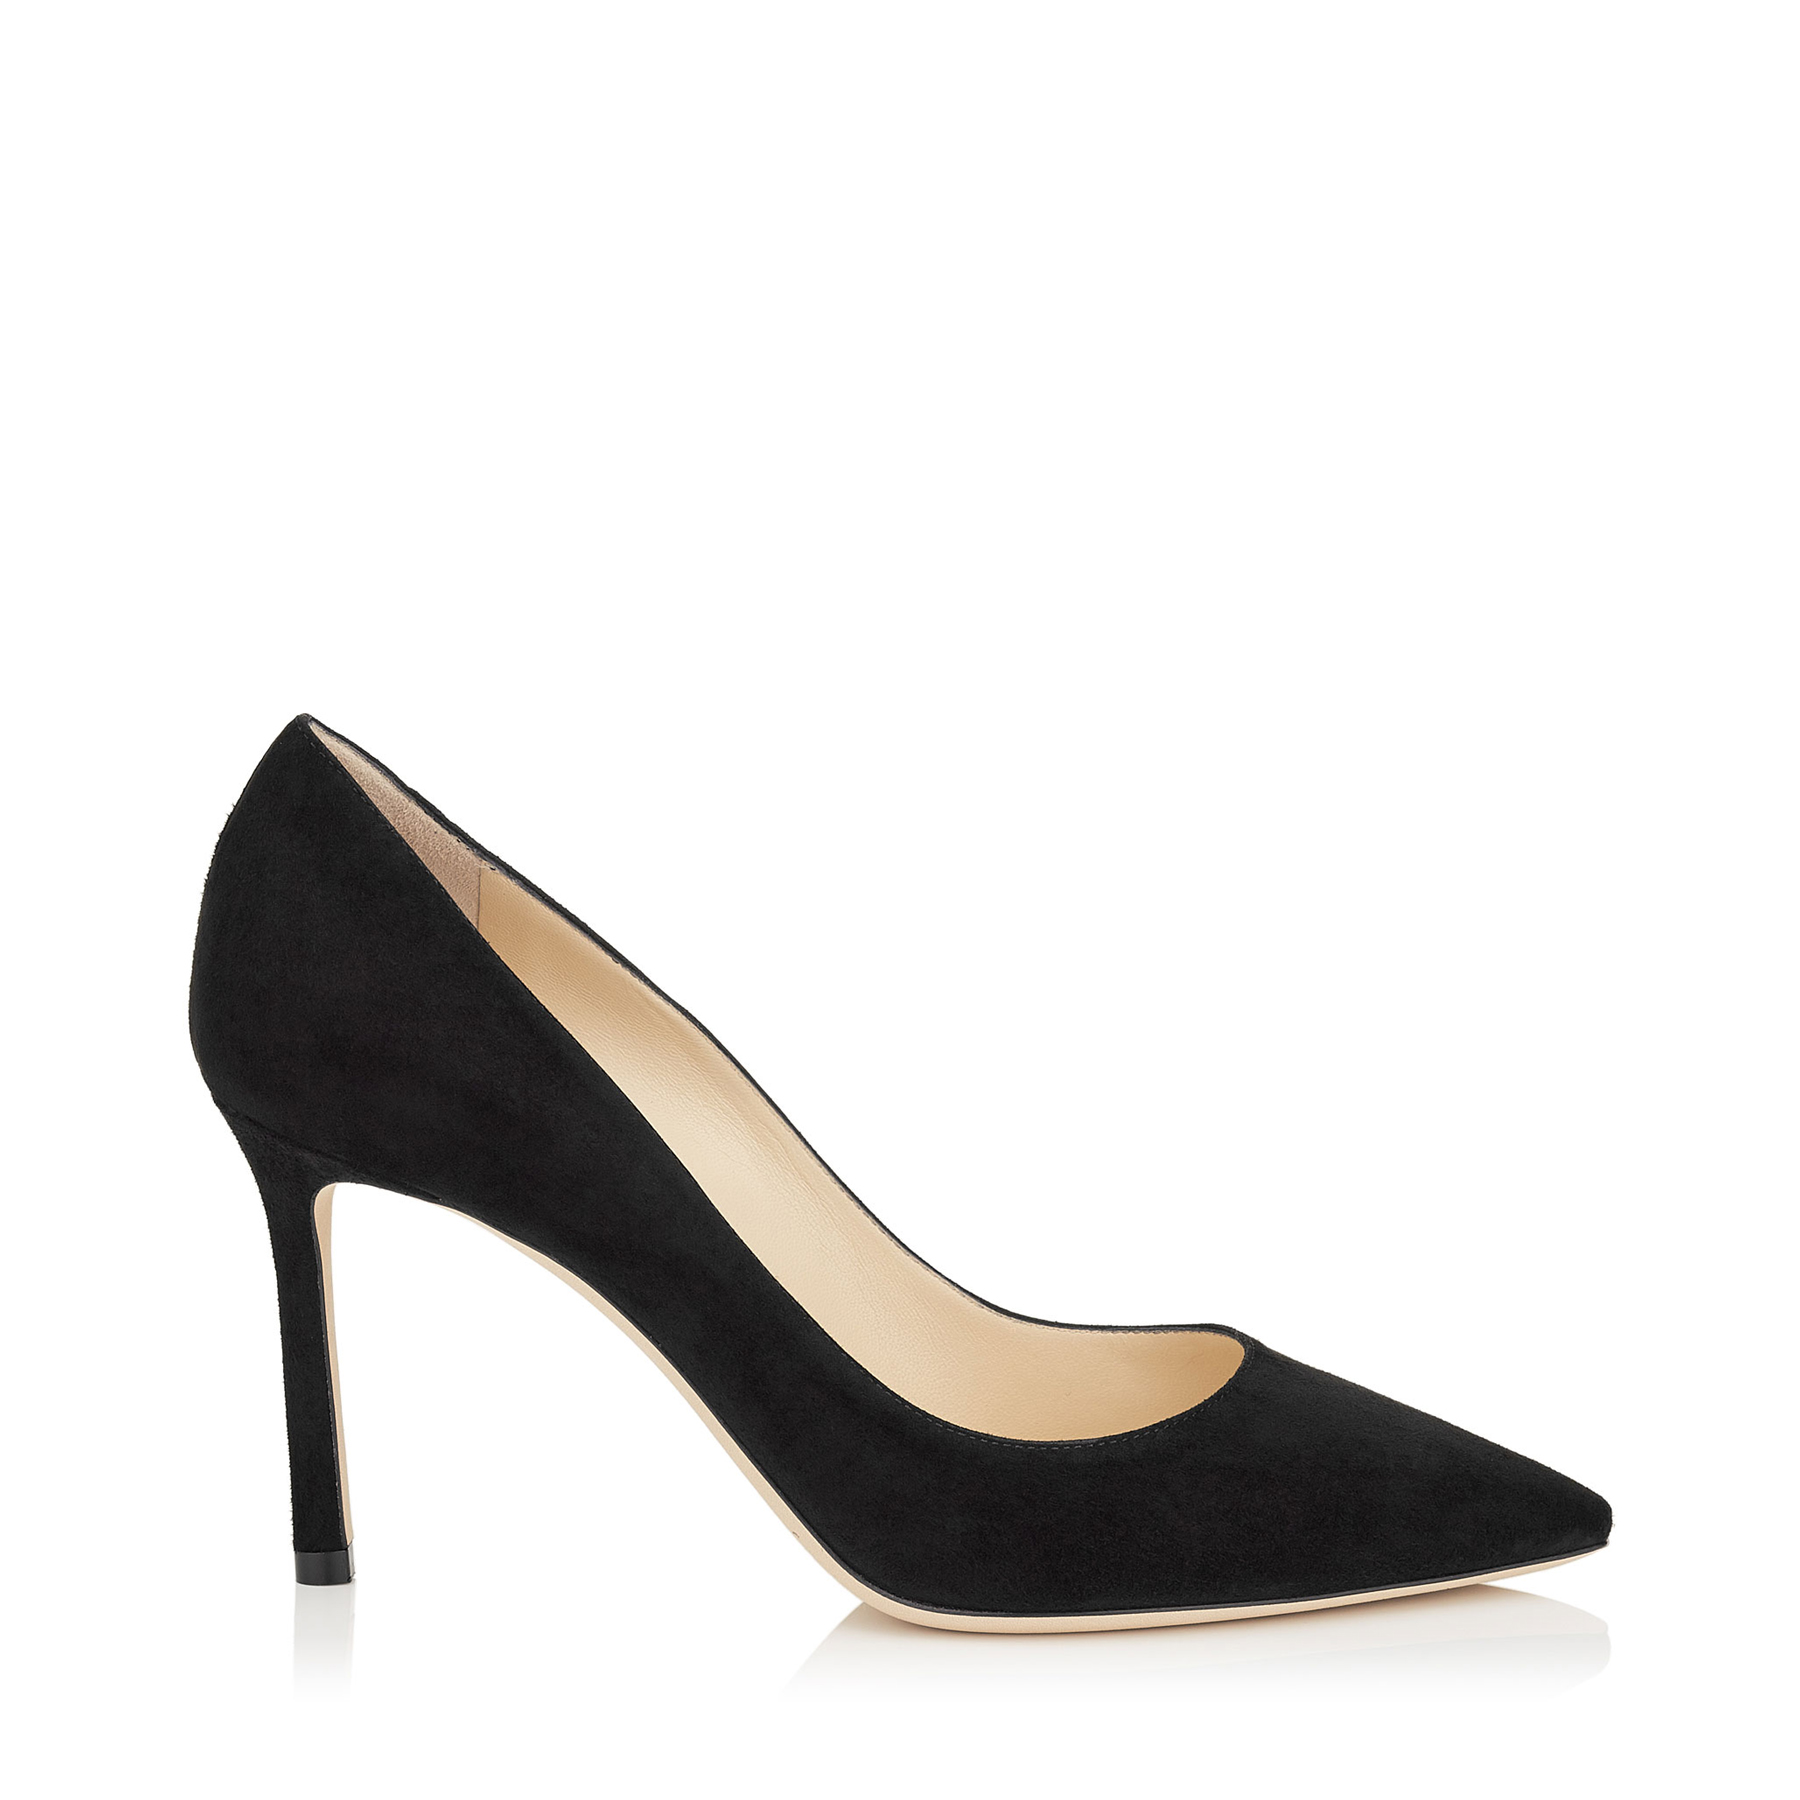 ROMY 85 Black Suede Pointy Toe Pumps